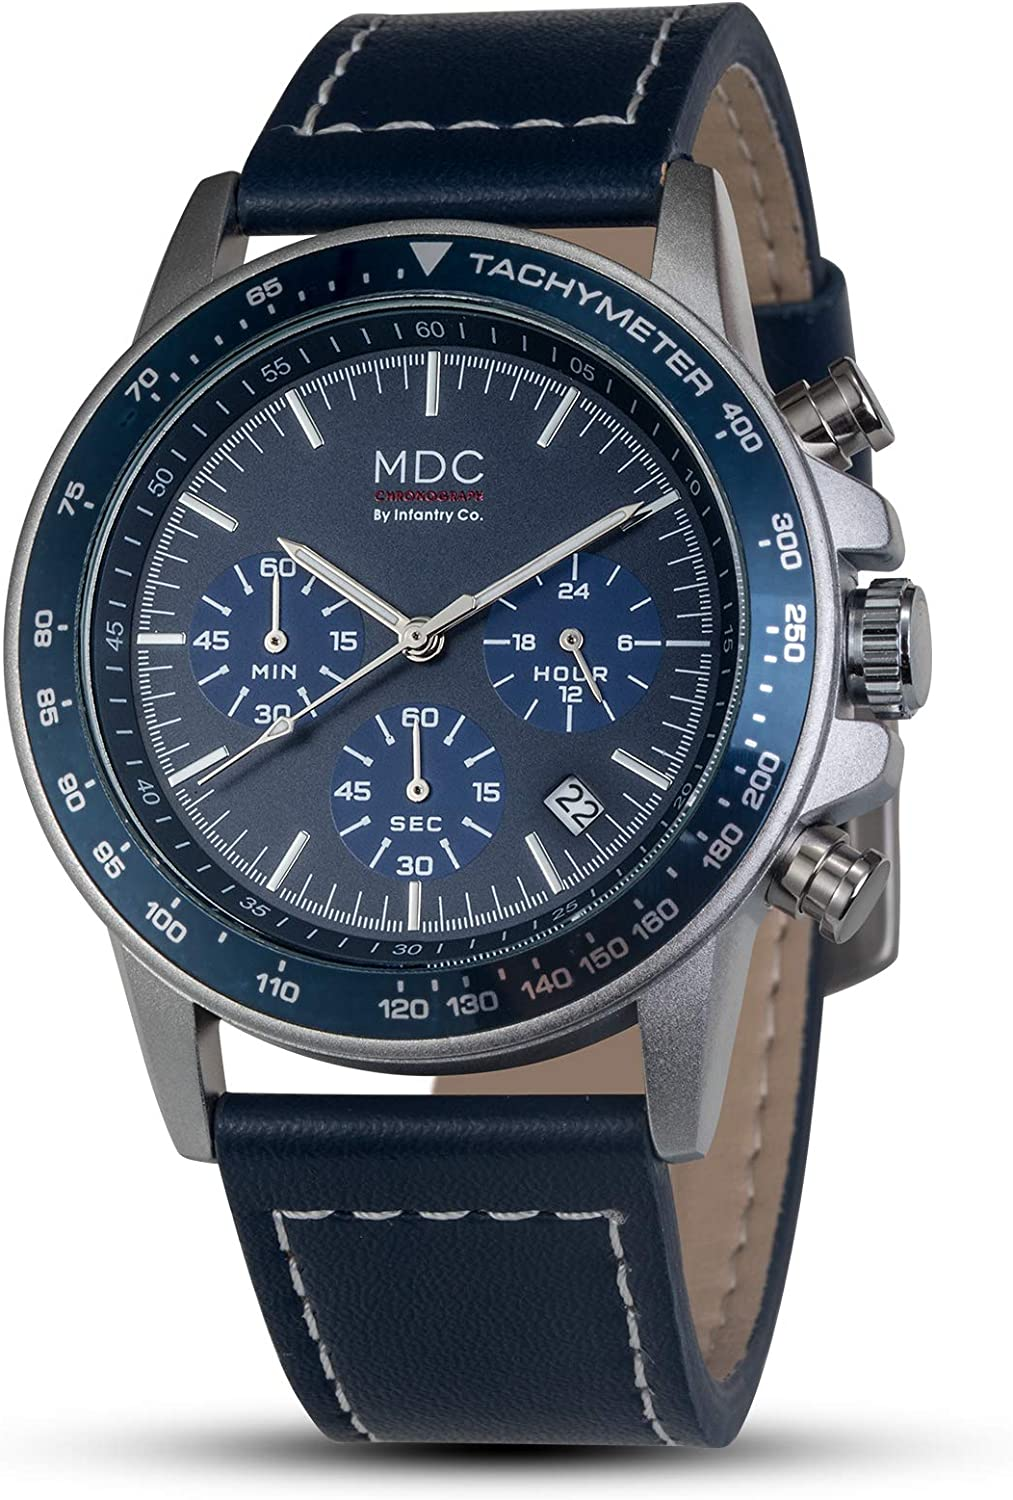 MDC Mens Classic Pilot Field Leather Watch Chronograph Calendar Date Analog Wrist Watches for Men